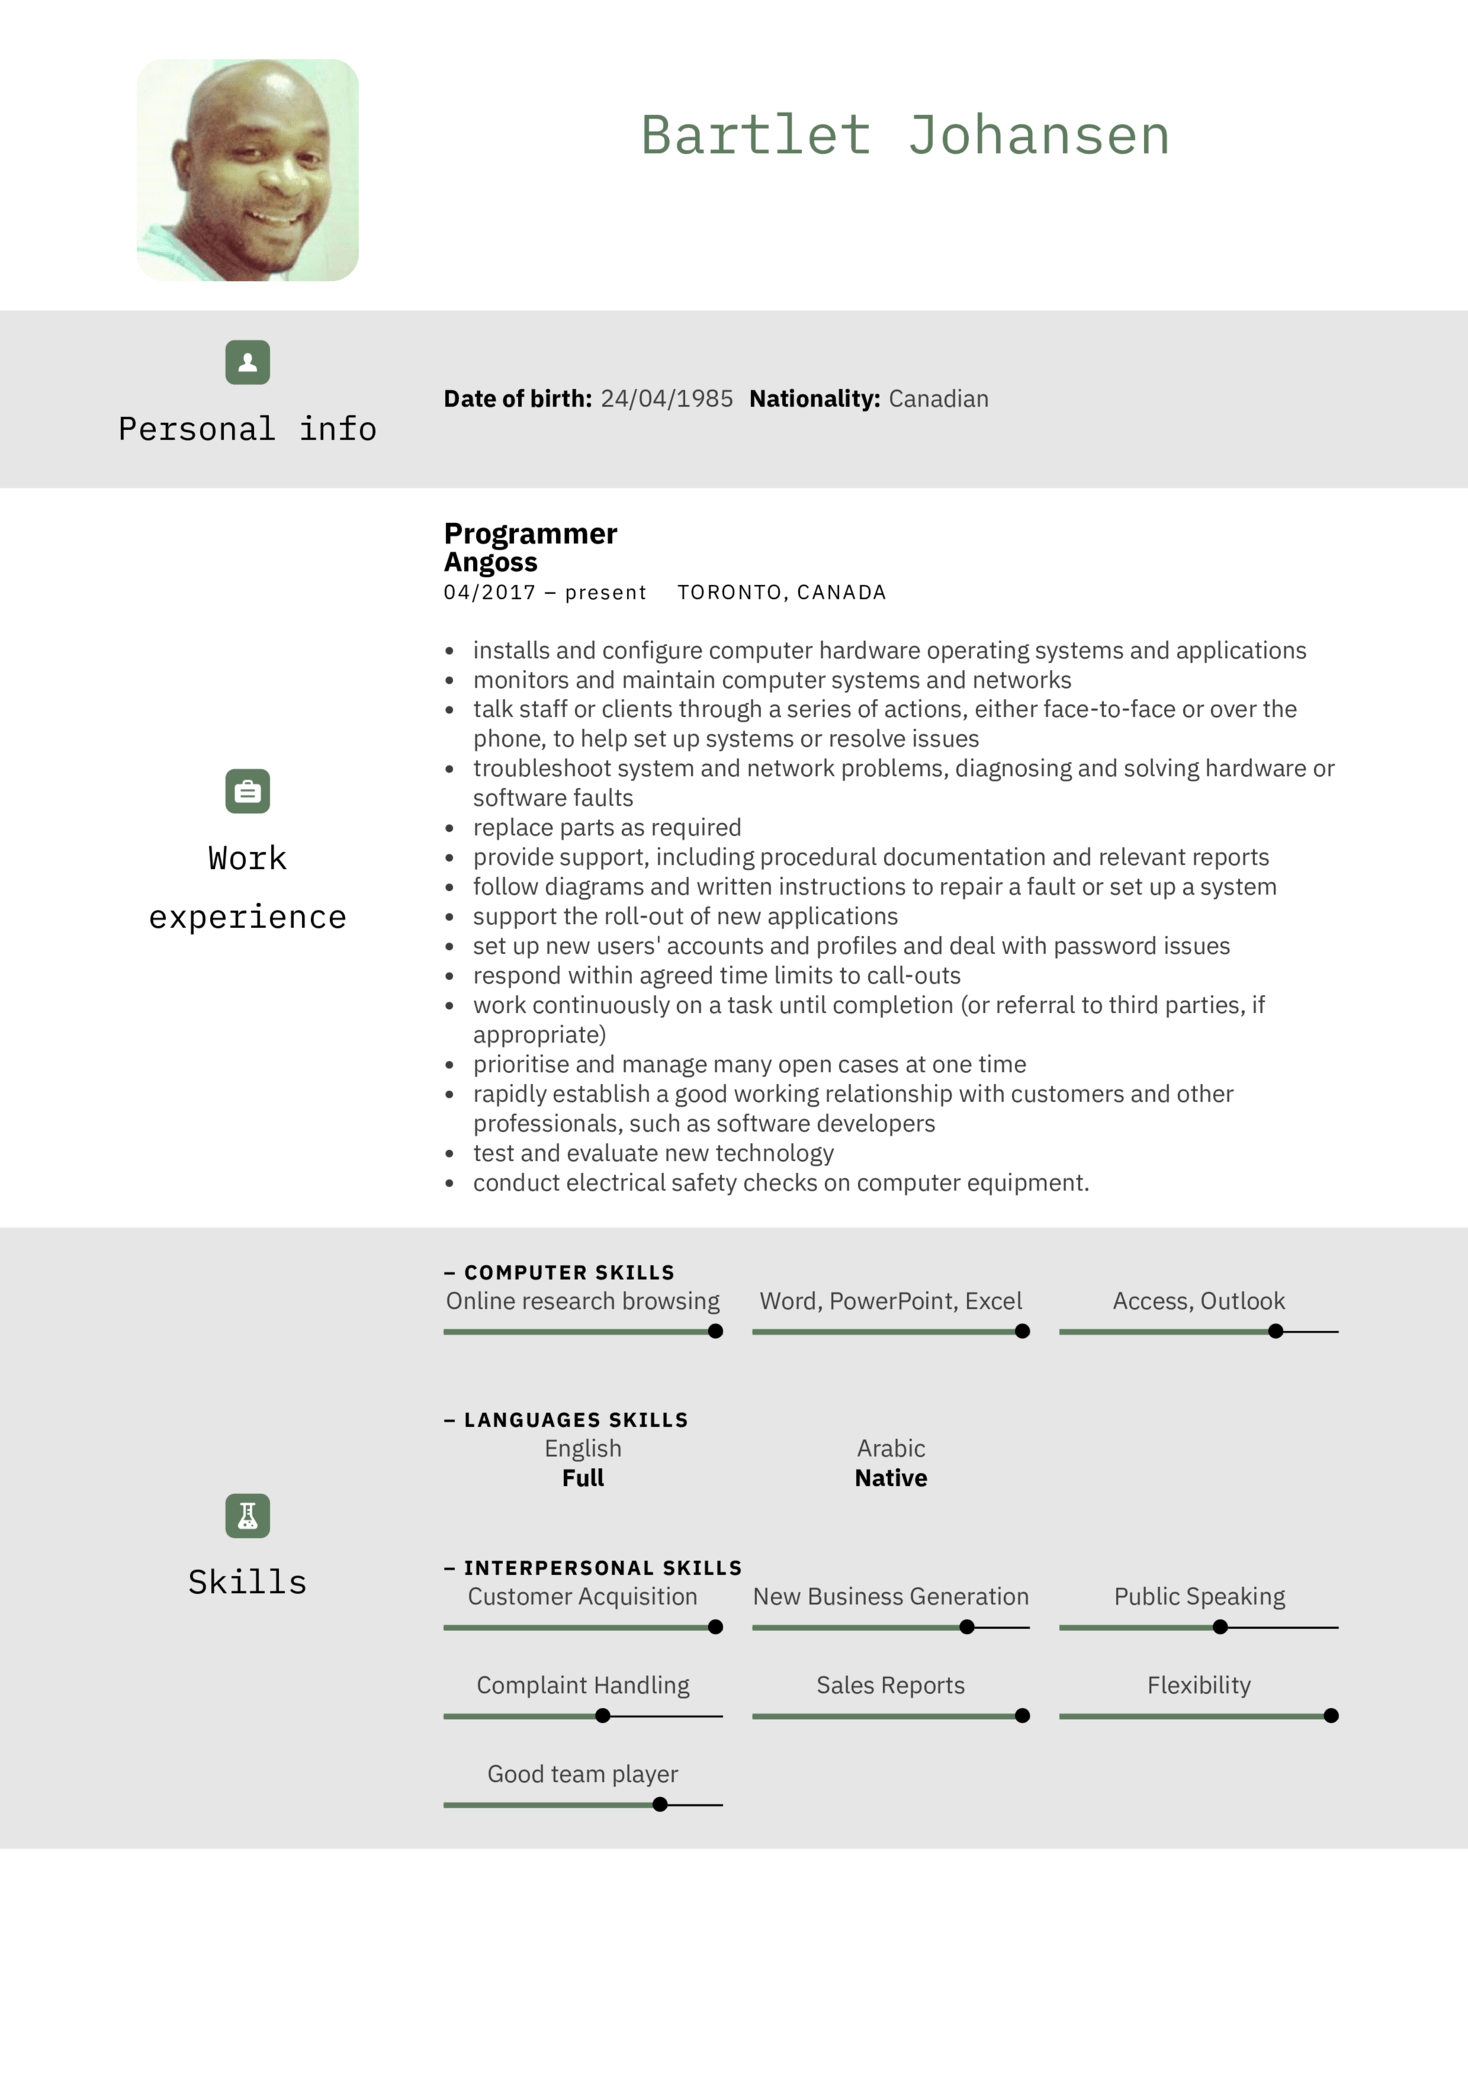 IBM IT Support Specialist Resume Example (parte 1)